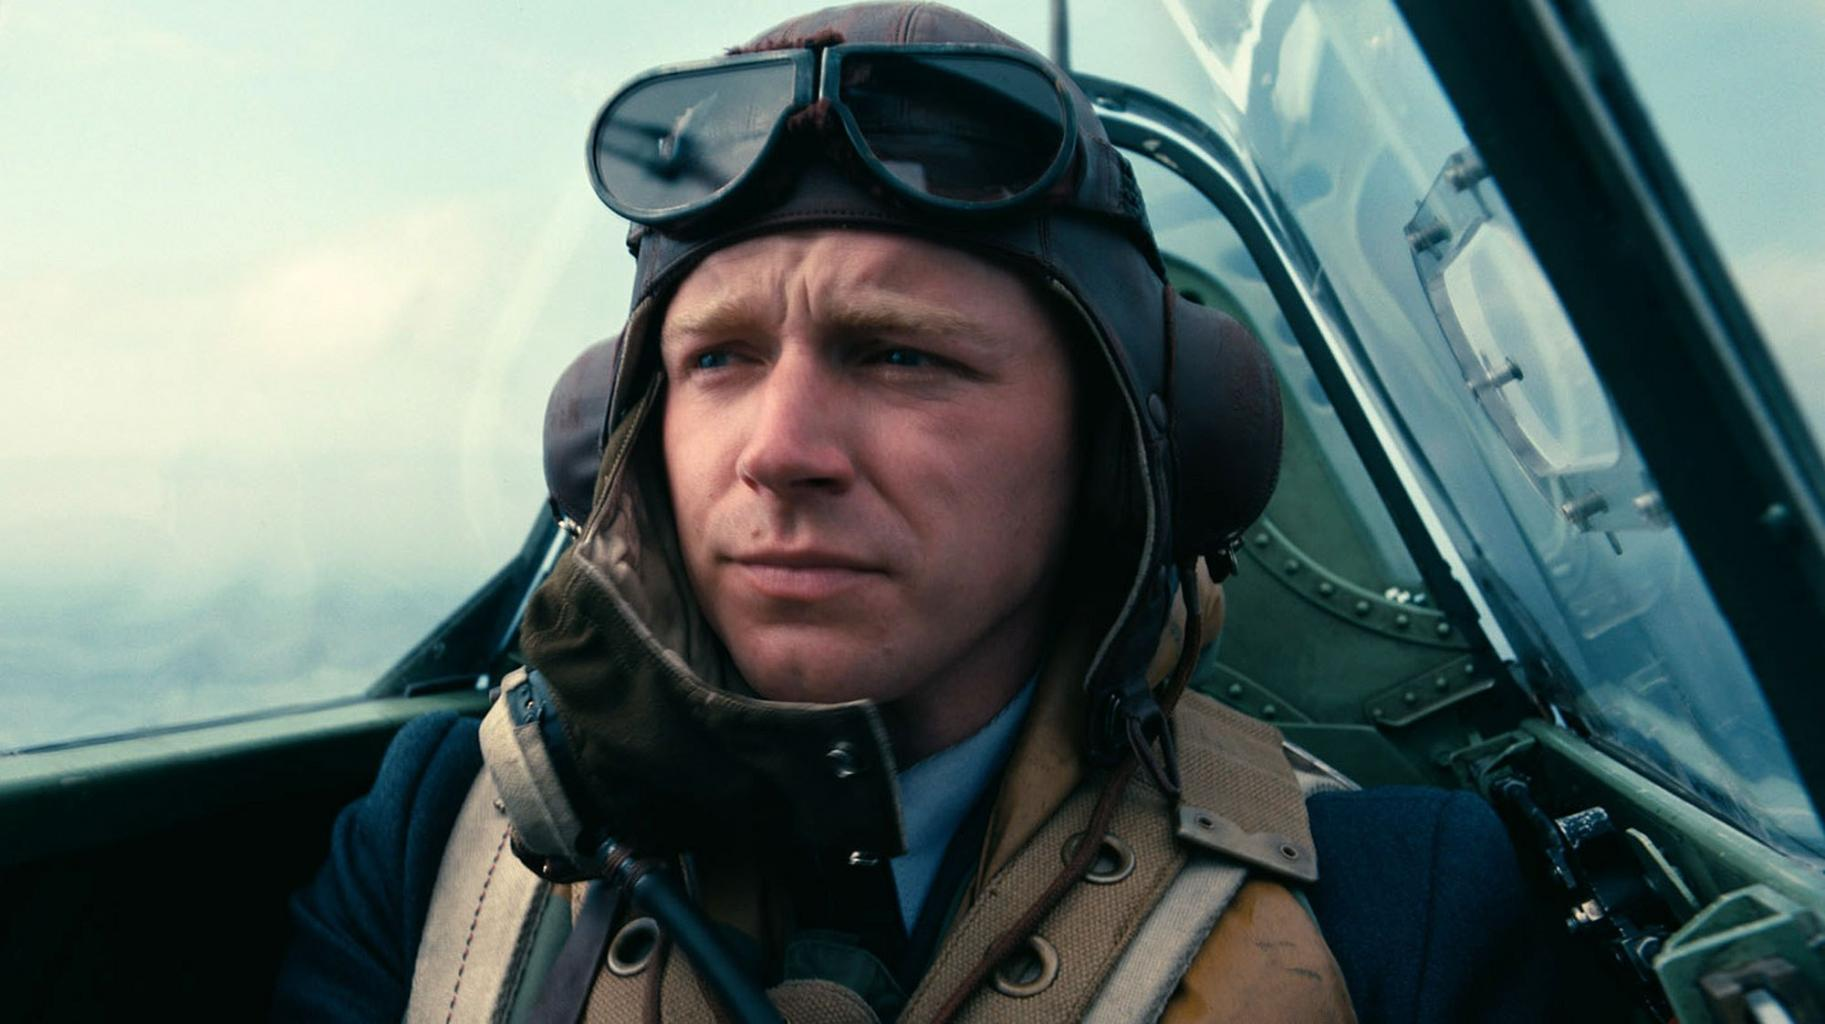 Move Over, Tom Hardy! Meet Dunkirk's Other Sexy Pilot, Jack Lowden